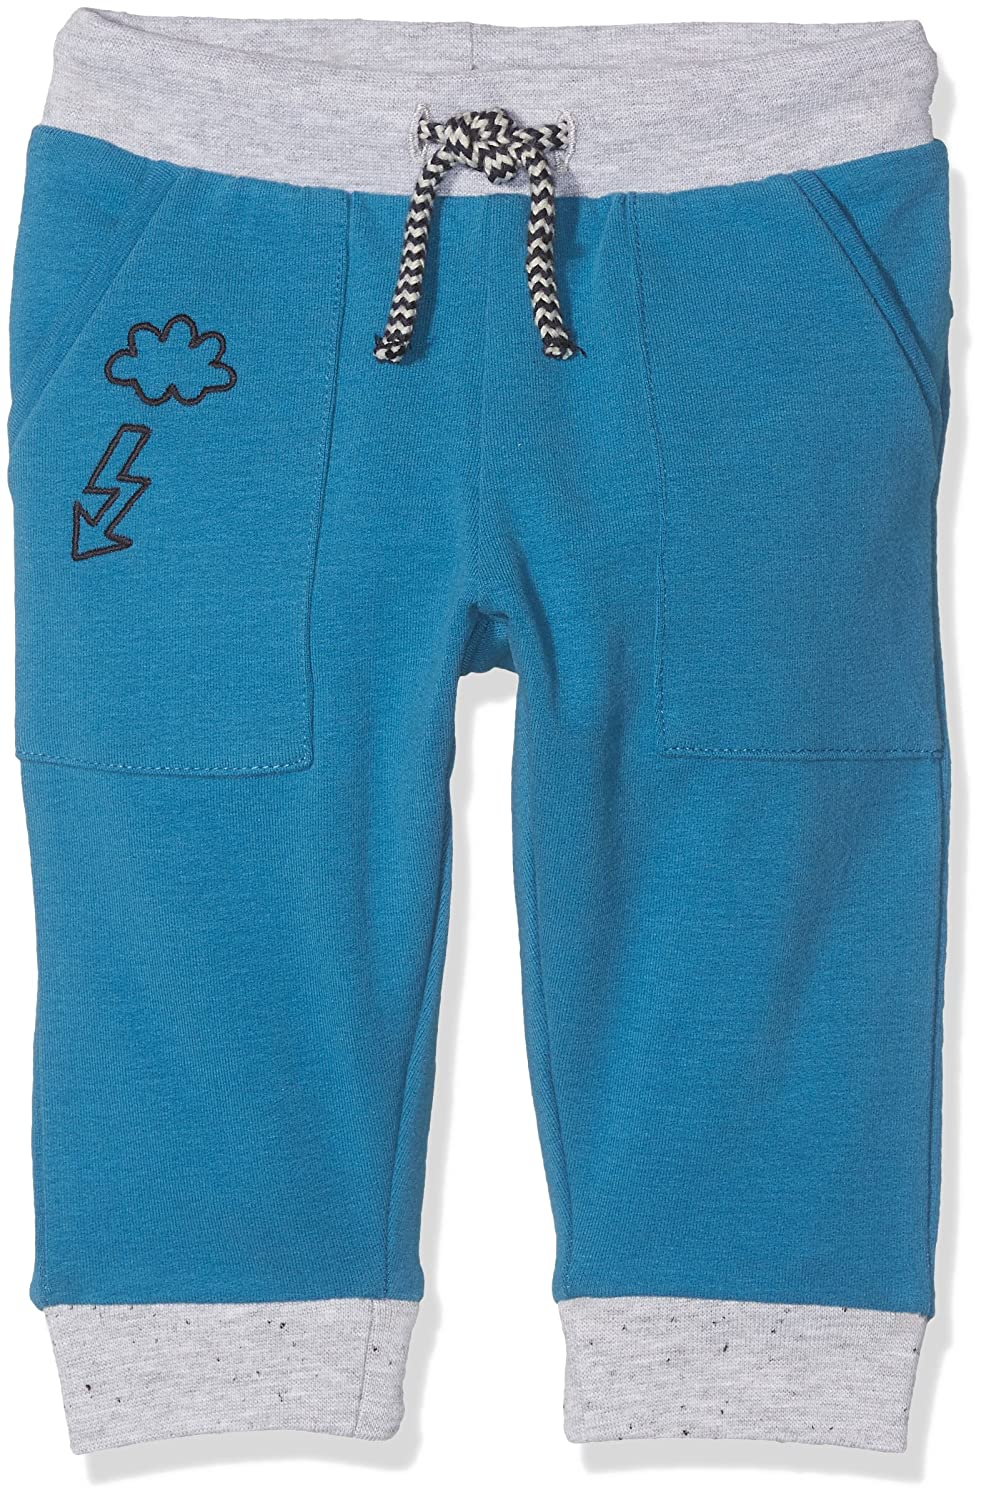 Tom Tailor Cosy Solid Sweat Pant, Pantaloni Sportivi Bimbo Blu (Blue Petrol 6086) 68 TOM TAILOR Kids 68292080022